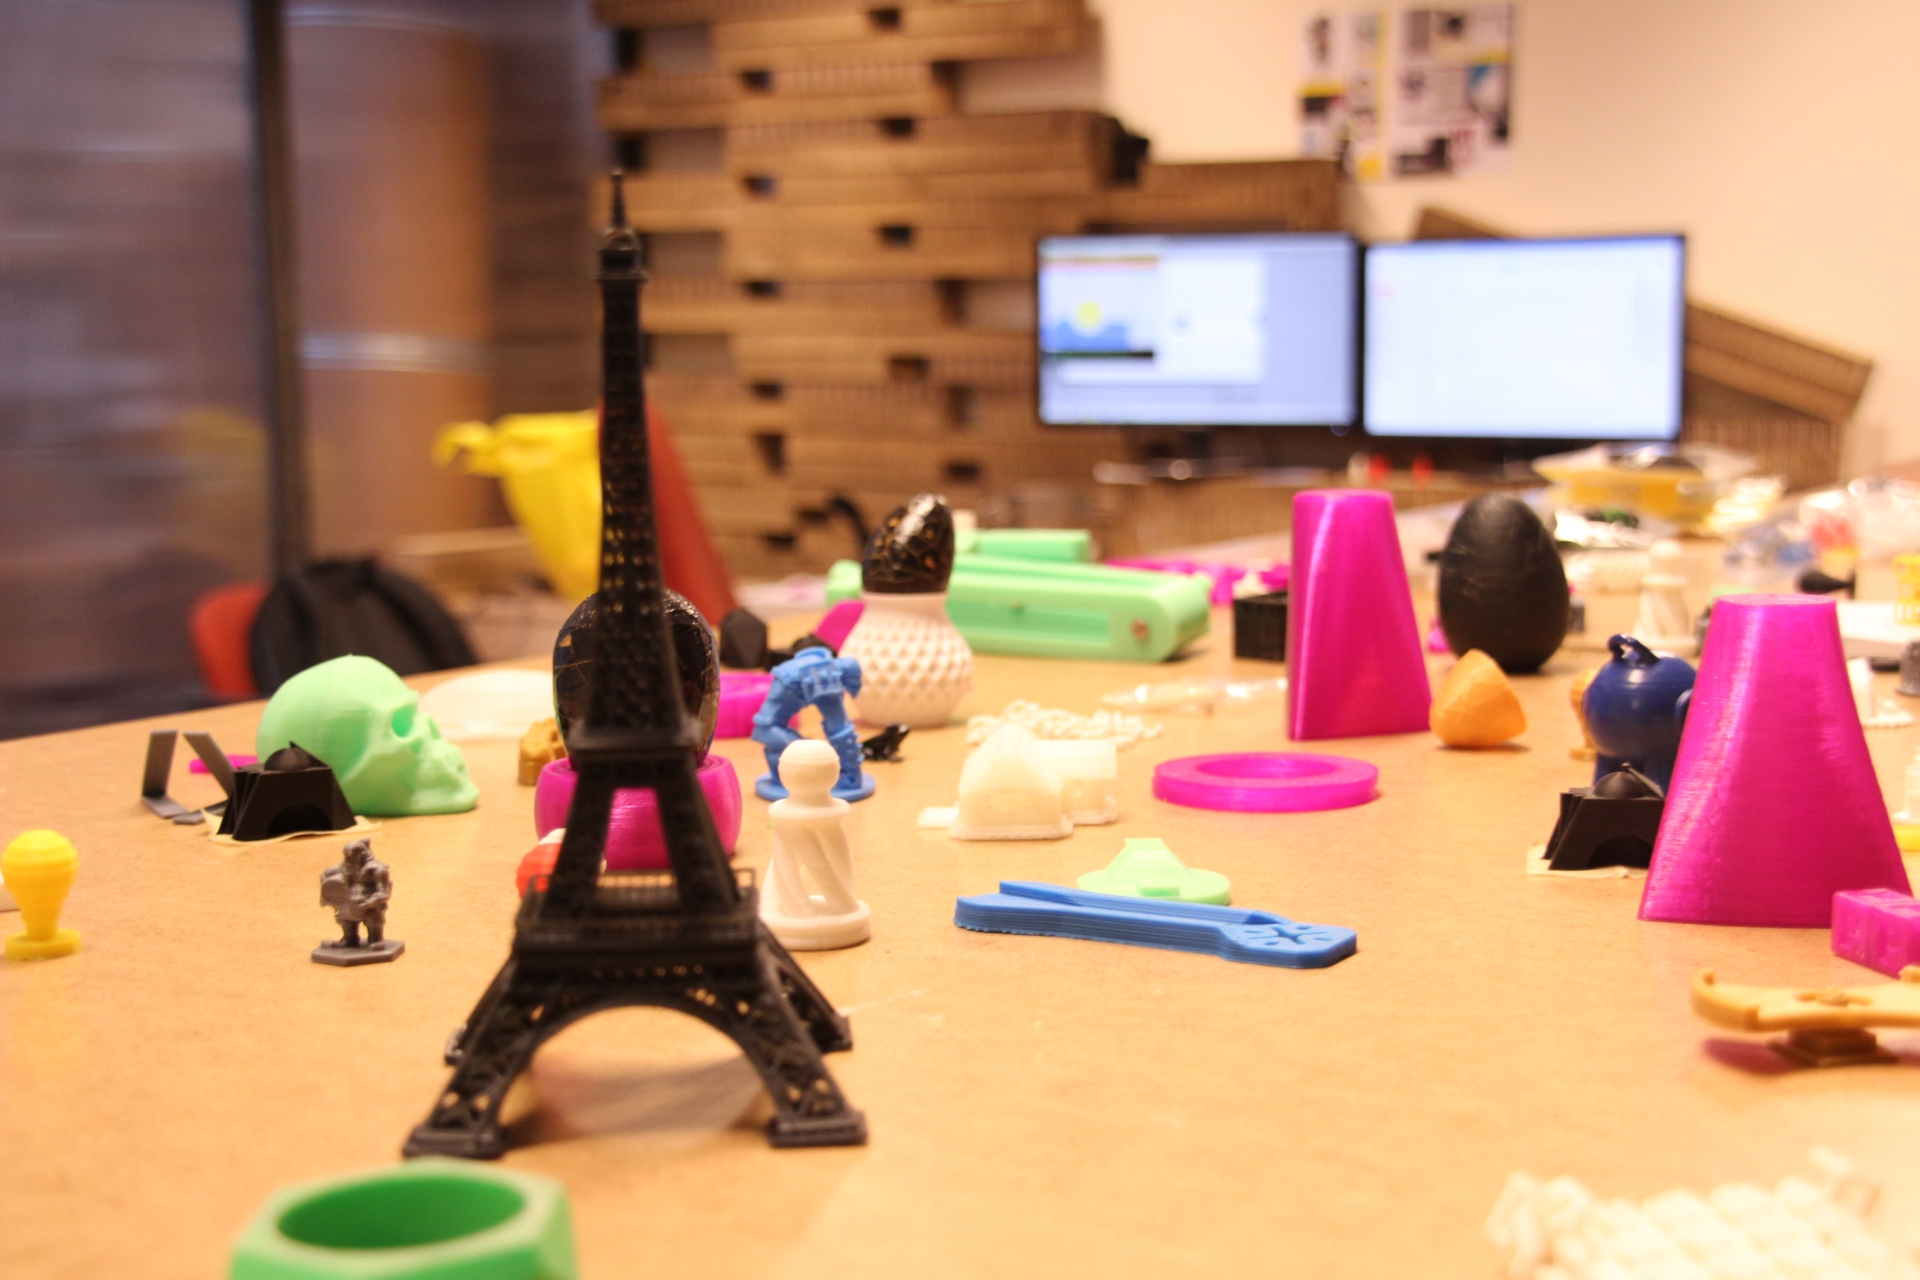 3D printing basics workshops